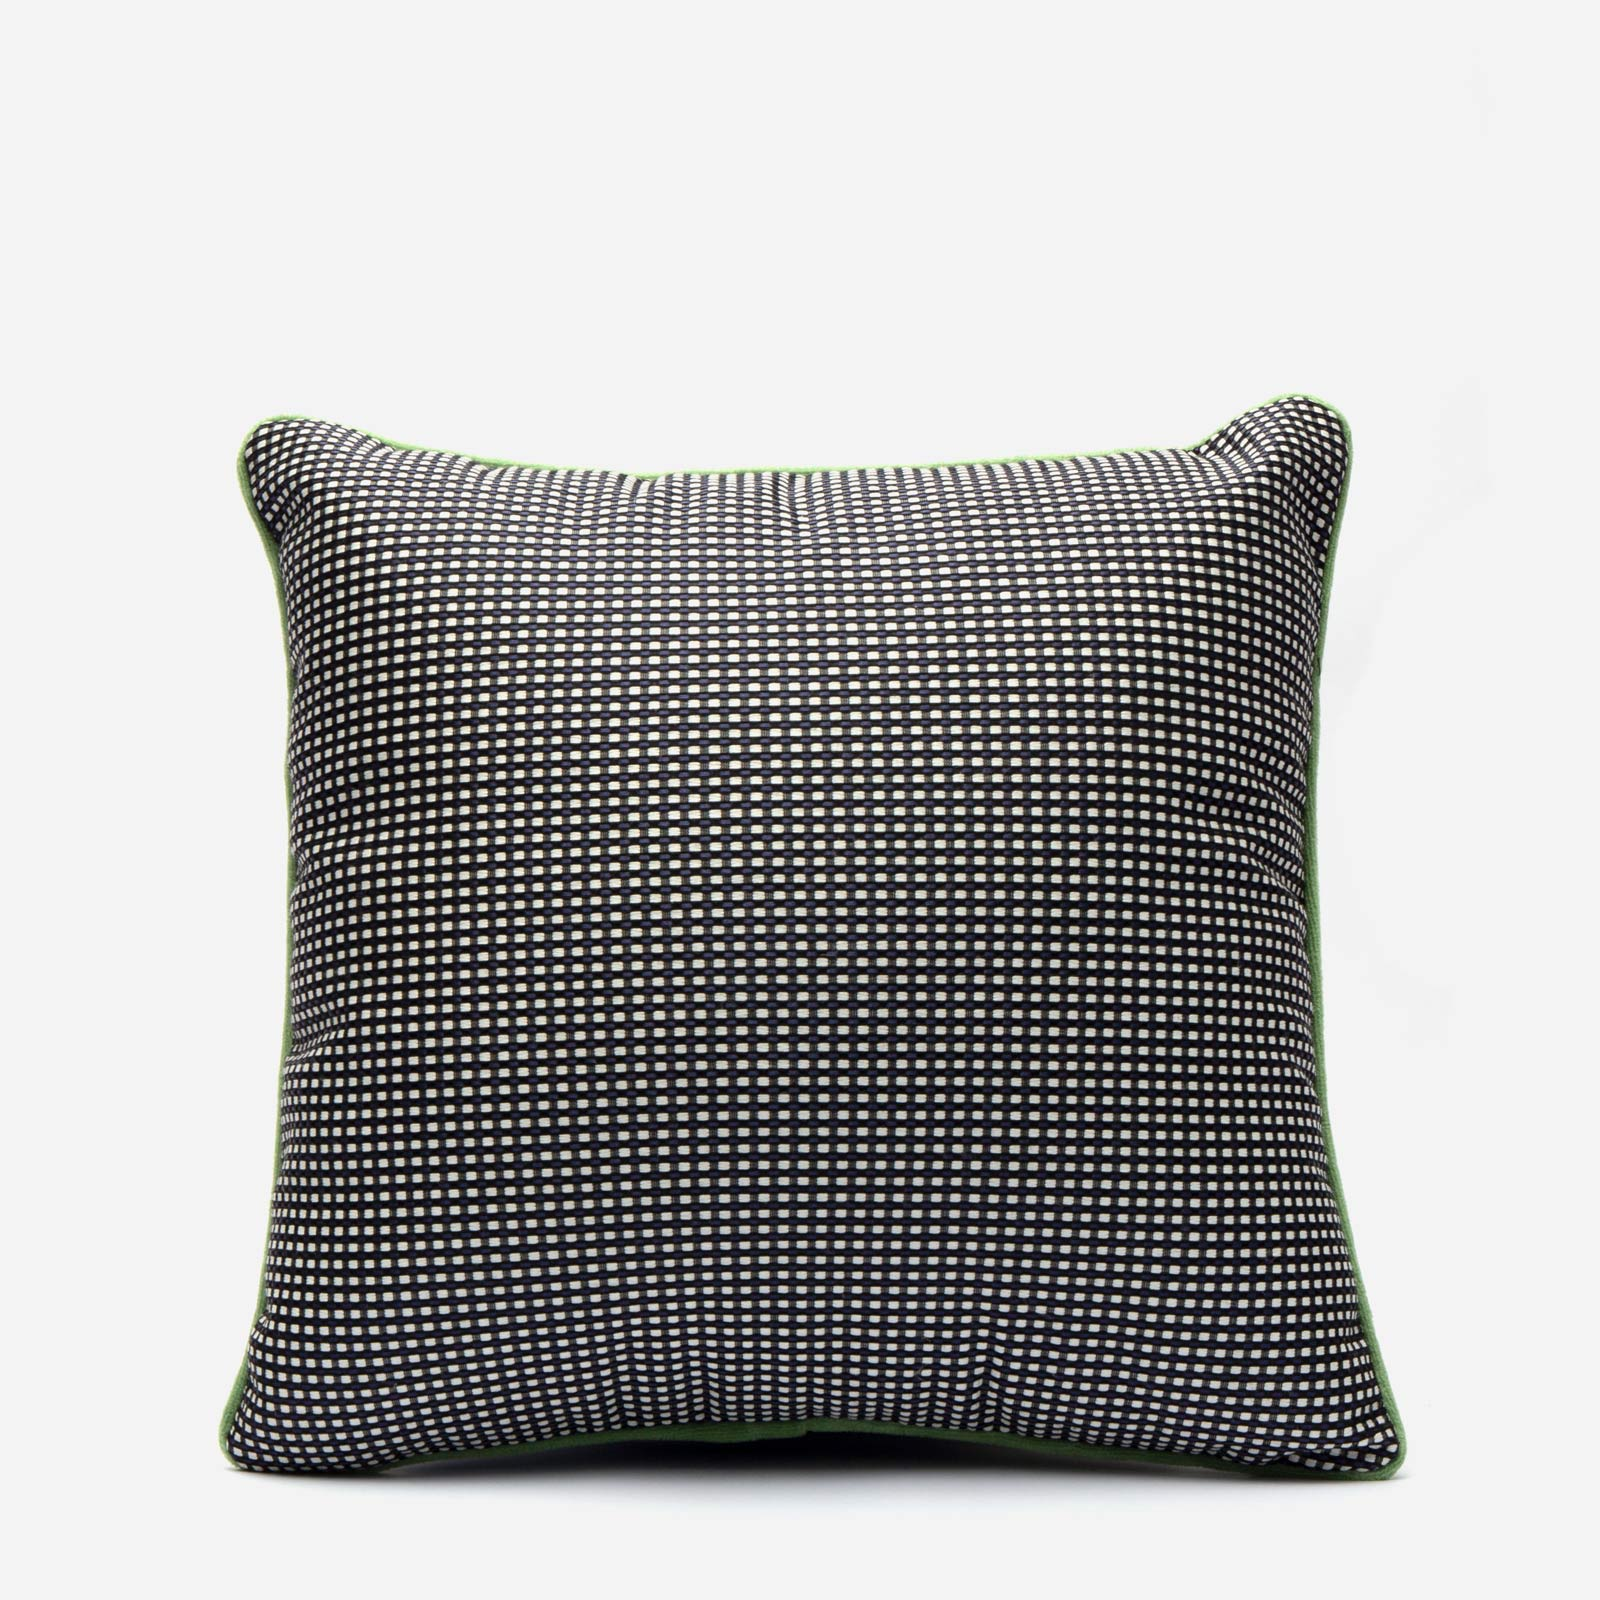 Dot Jacquard Throw Pillow Black White - Frances Valentine